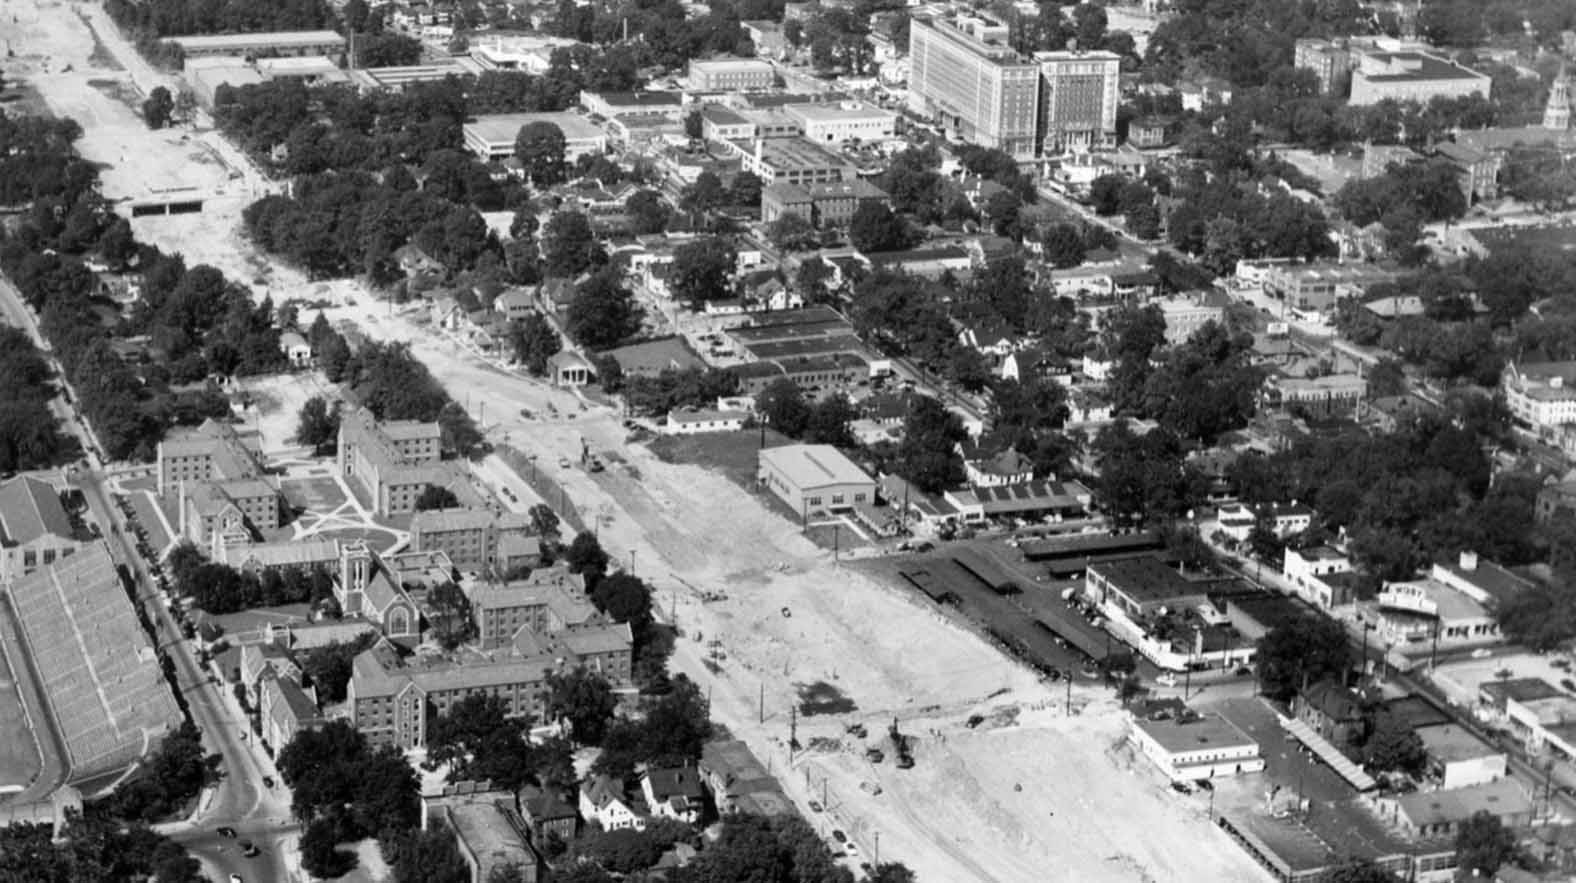 Connector Construction in Midtown, 1950s